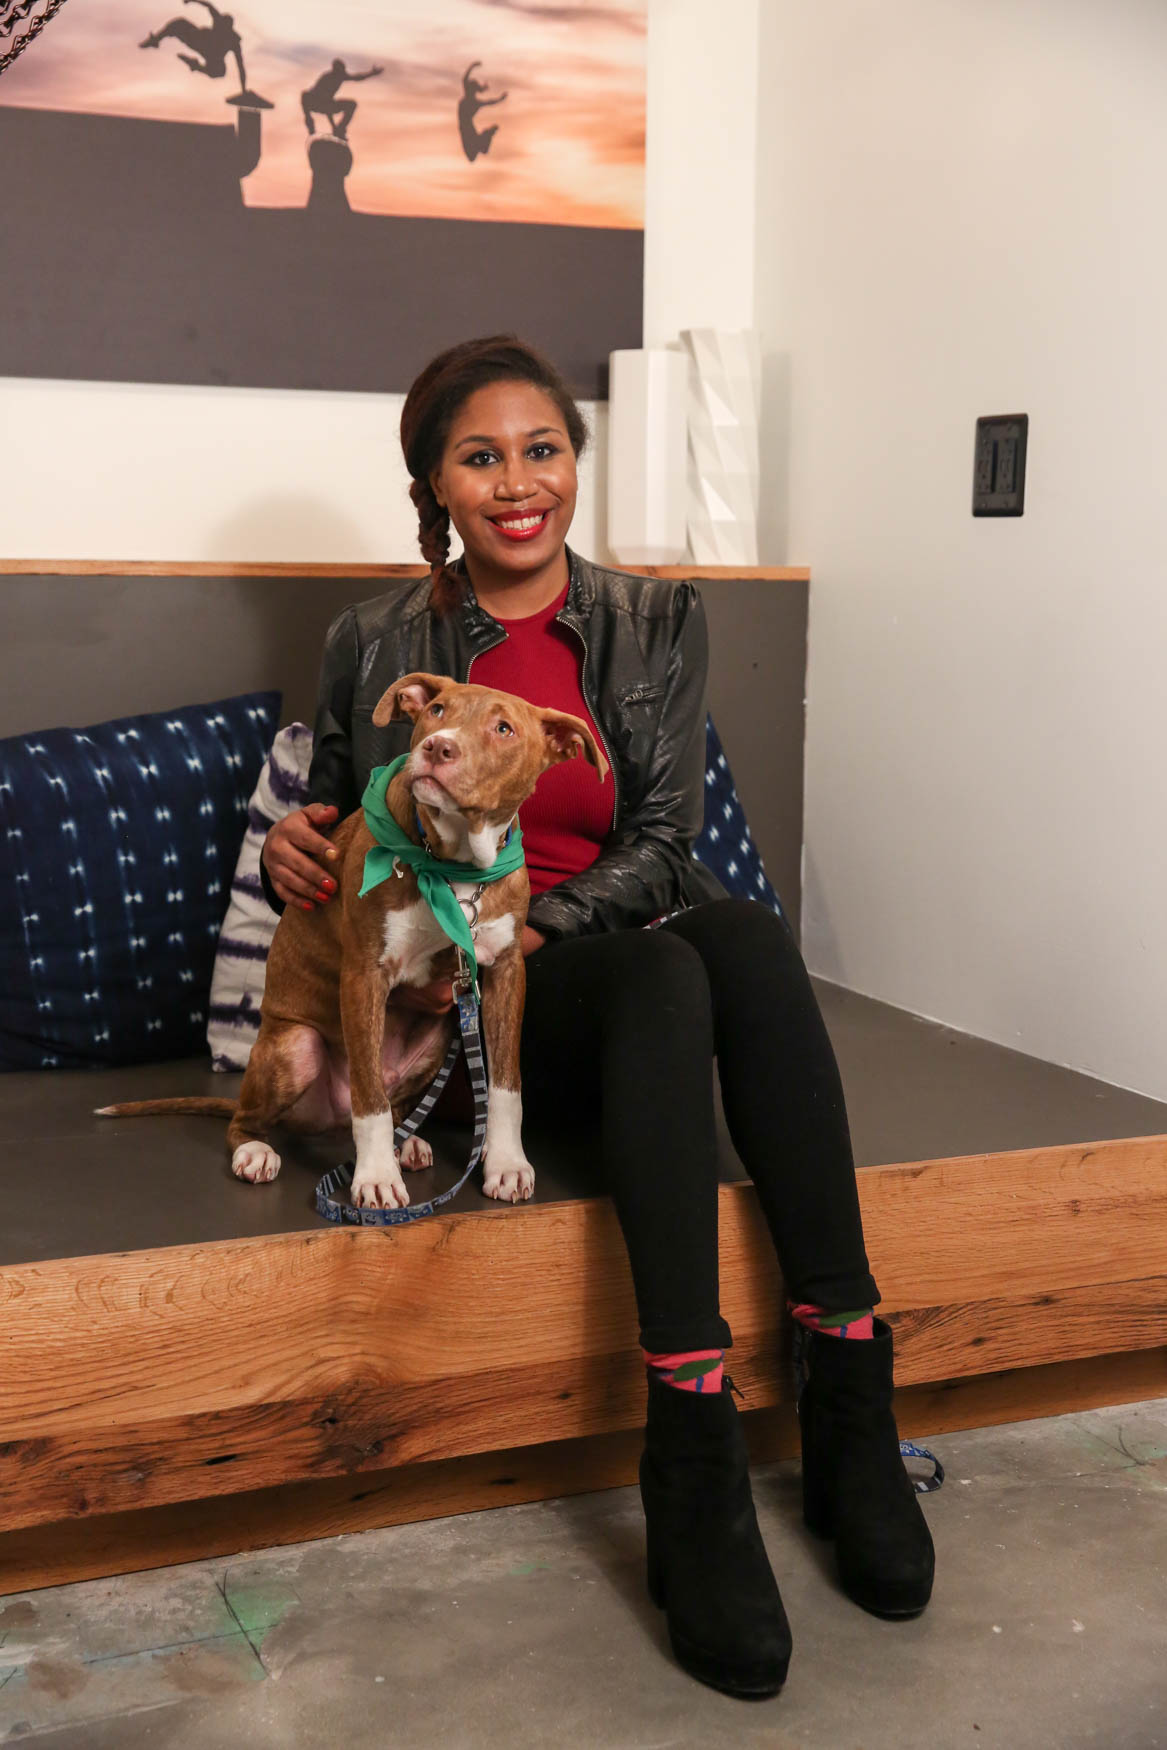 The good news is Uncle was ADOPTED following our photoshoot! His sister Ula is still looking for a home. Photo location: Moxy Washington, D.C. Downtown (Image: Amanda Andrade-Rhoades/ DC Refined)